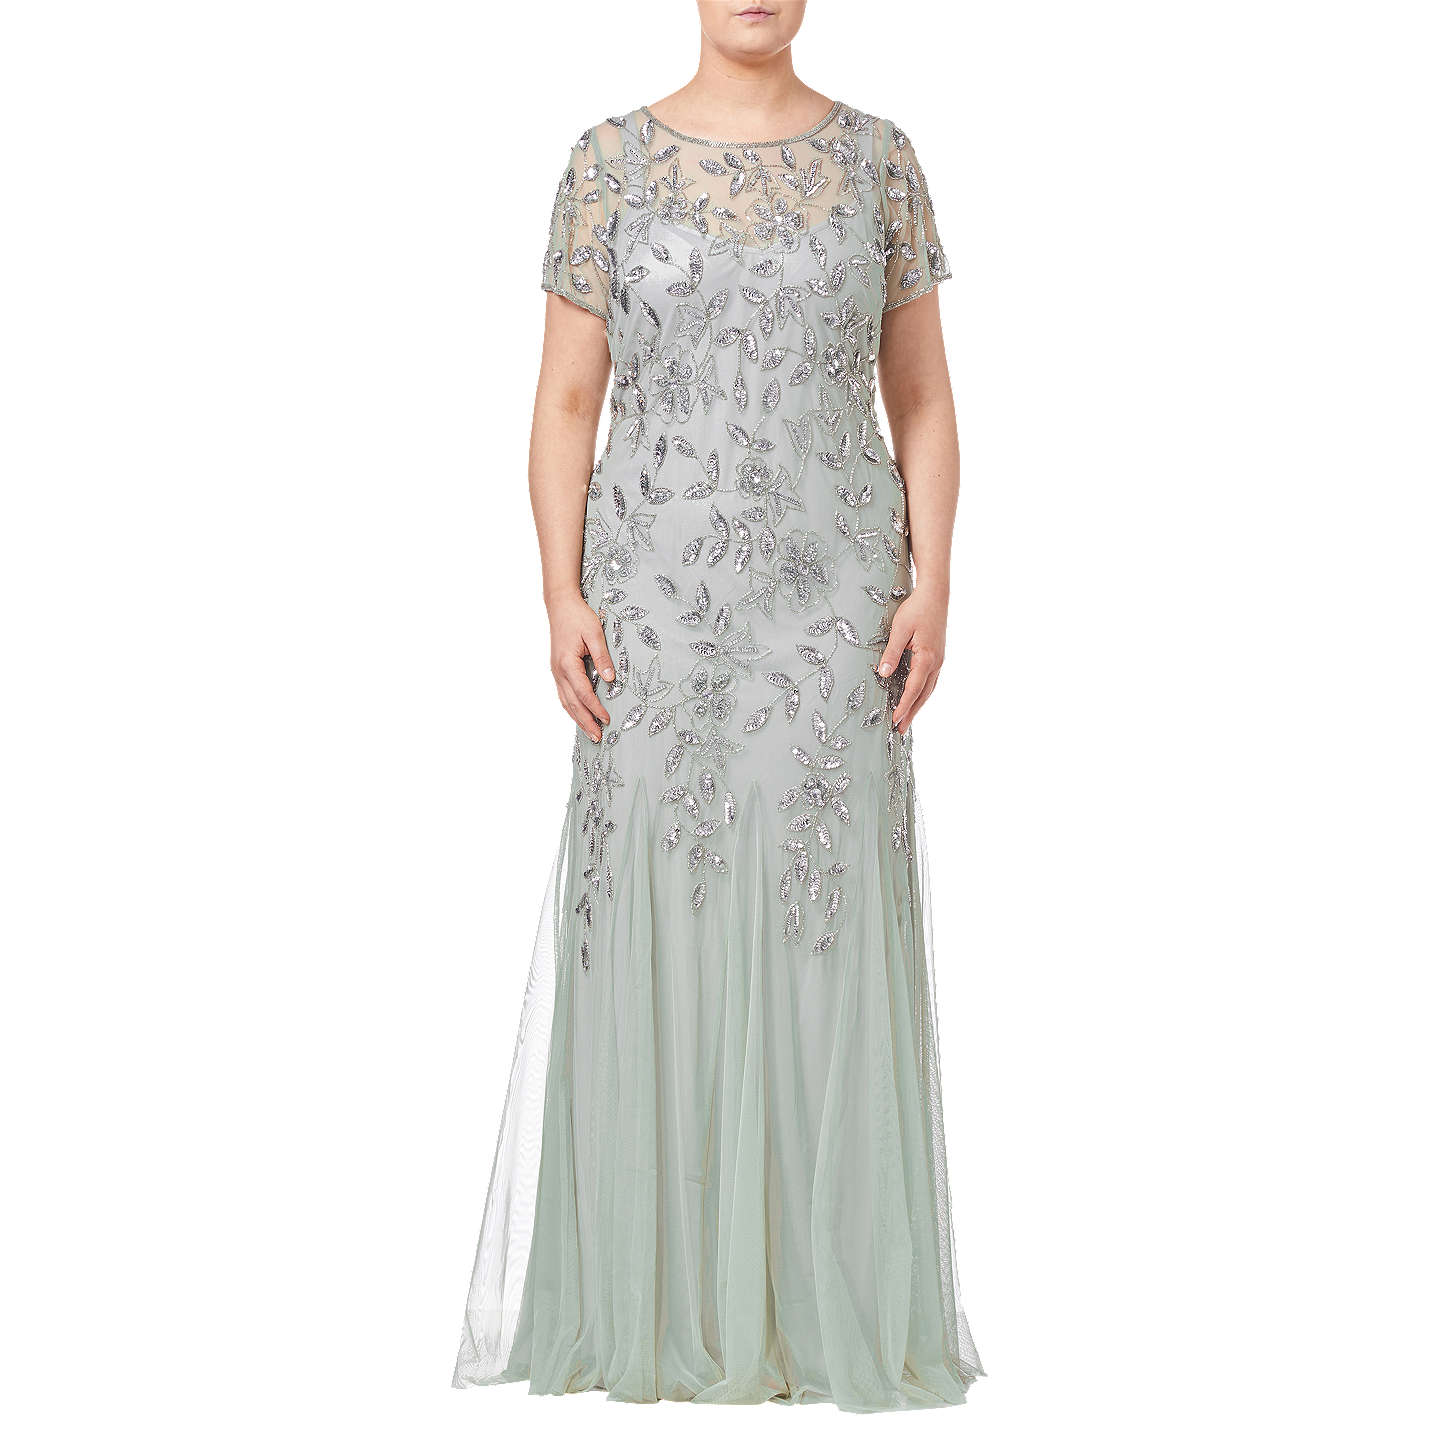 Adrianna Papell Plus Size Floral Beaded Godet Dress Mint At John Lewis